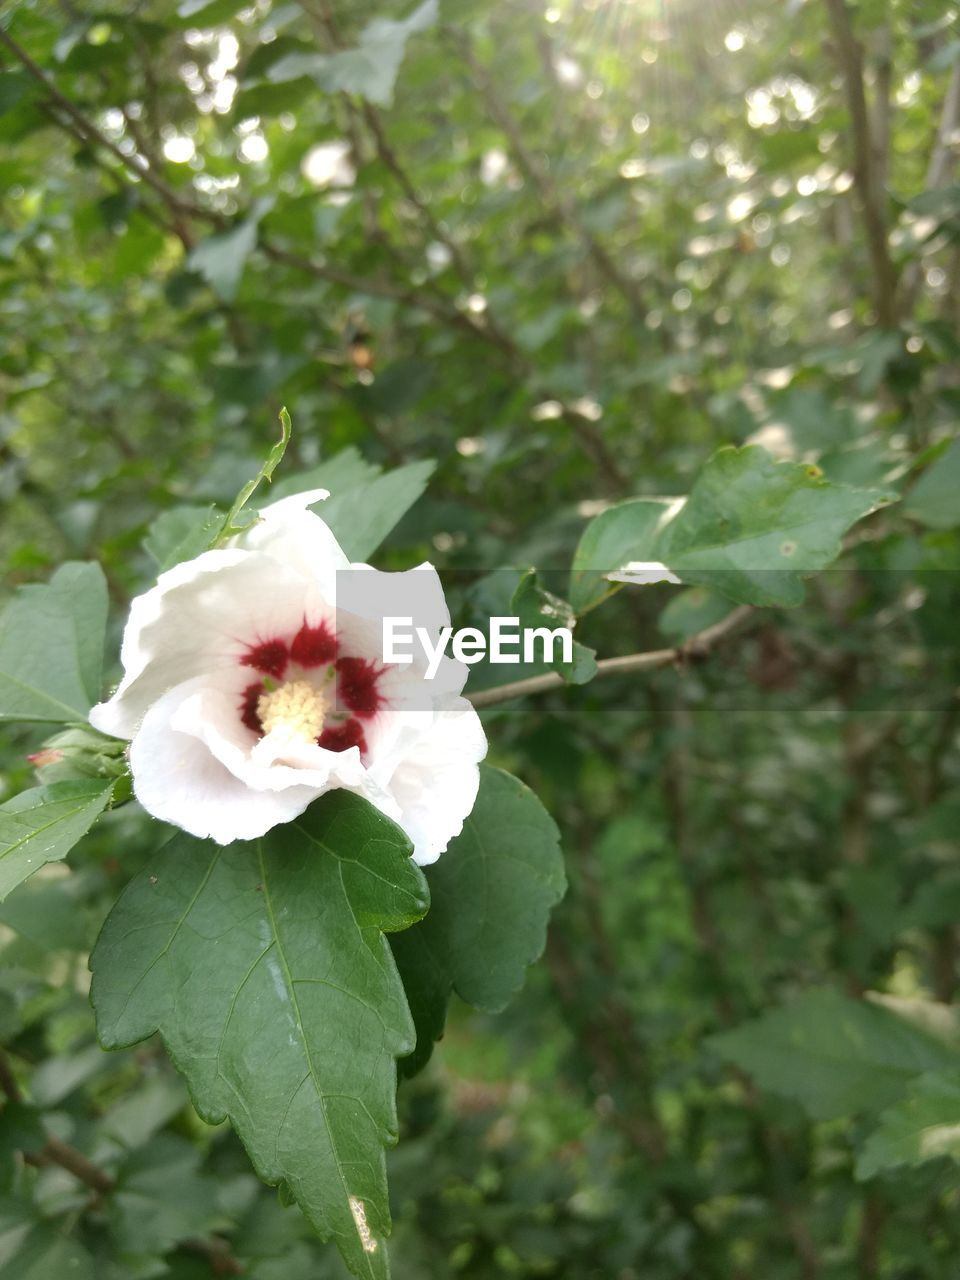 flower, growth, fragility, nature, petal, beauty in nature, white color, flower head, day, green color, plant, freshness, focus on foreground, outdoors, no people, leaf, close-up, pink color, one animal, blooming, tree, animal themes